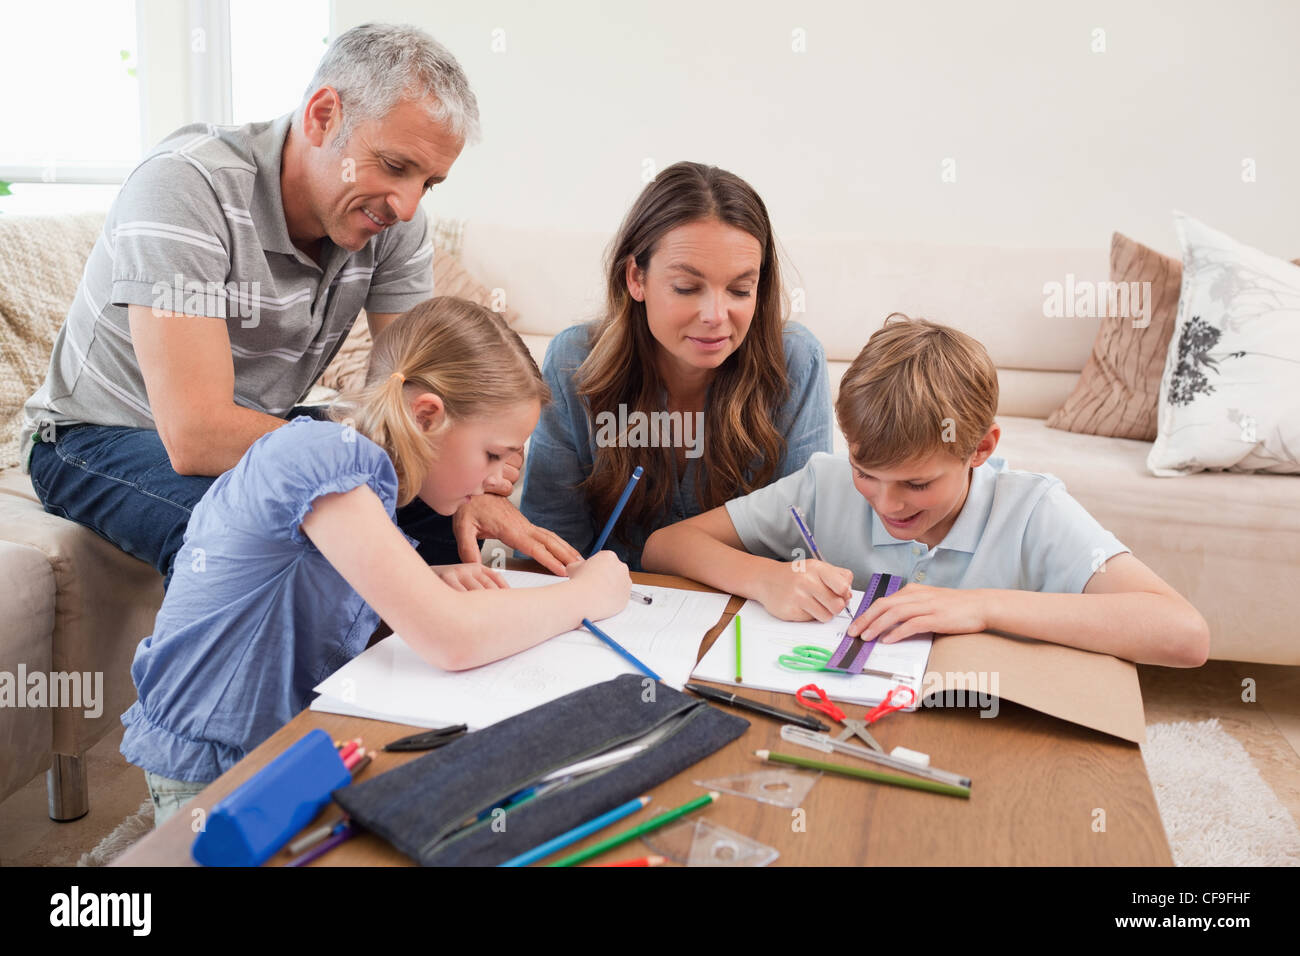 Parents Helping Their Children To Do Their Homework Stock Photo     Alamy Parents helping their children to do their homework